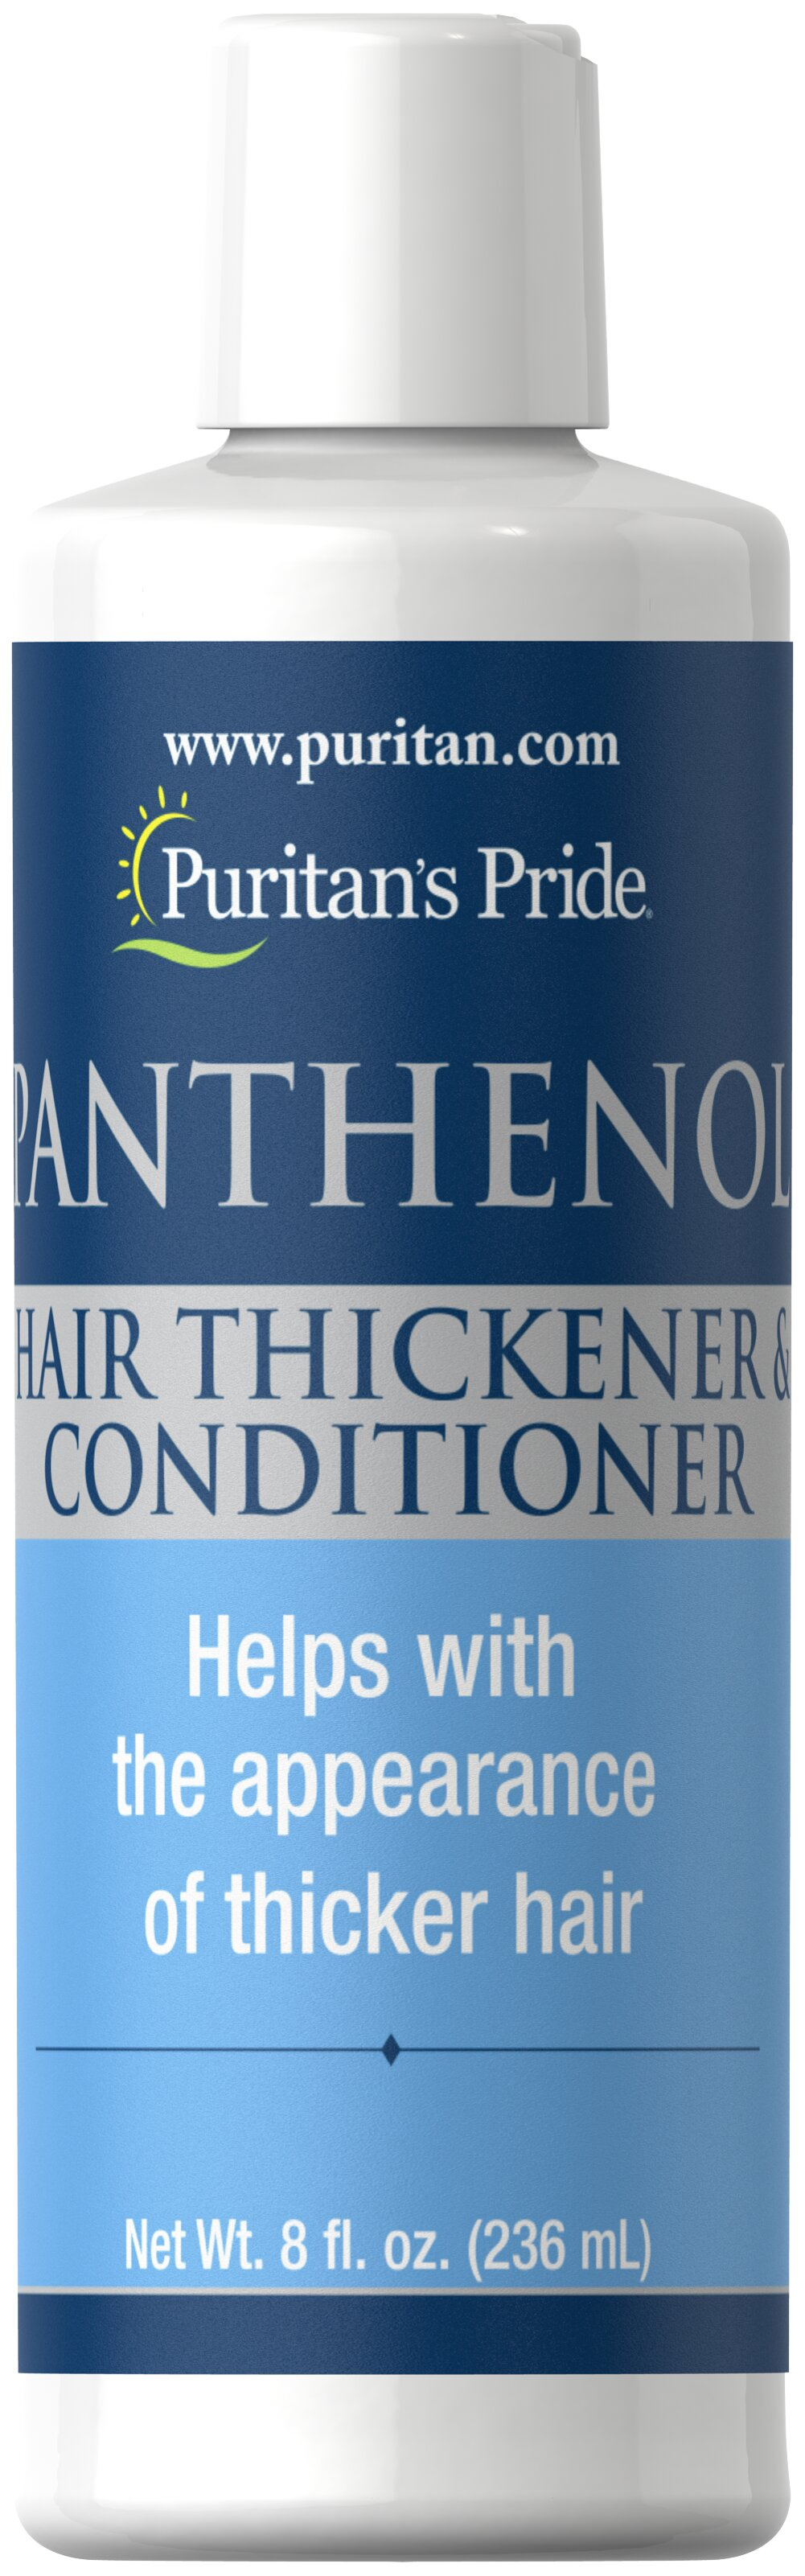 Panthenol Hair Thickener & Conditioner <p>Add New Body to Lifeless Hair</p><p>Pamper your hair with Puritan's Pride Hair Thickener & Conditioner. After continuous use, your hair will have more body, feel stronger, and look healthier. Panthenol revitalizes your hair as it penetrates each hair shaft, and can make a dramatic difference in the look and feel of your hair.</p> 8 fl oz Conditioner  $7.99